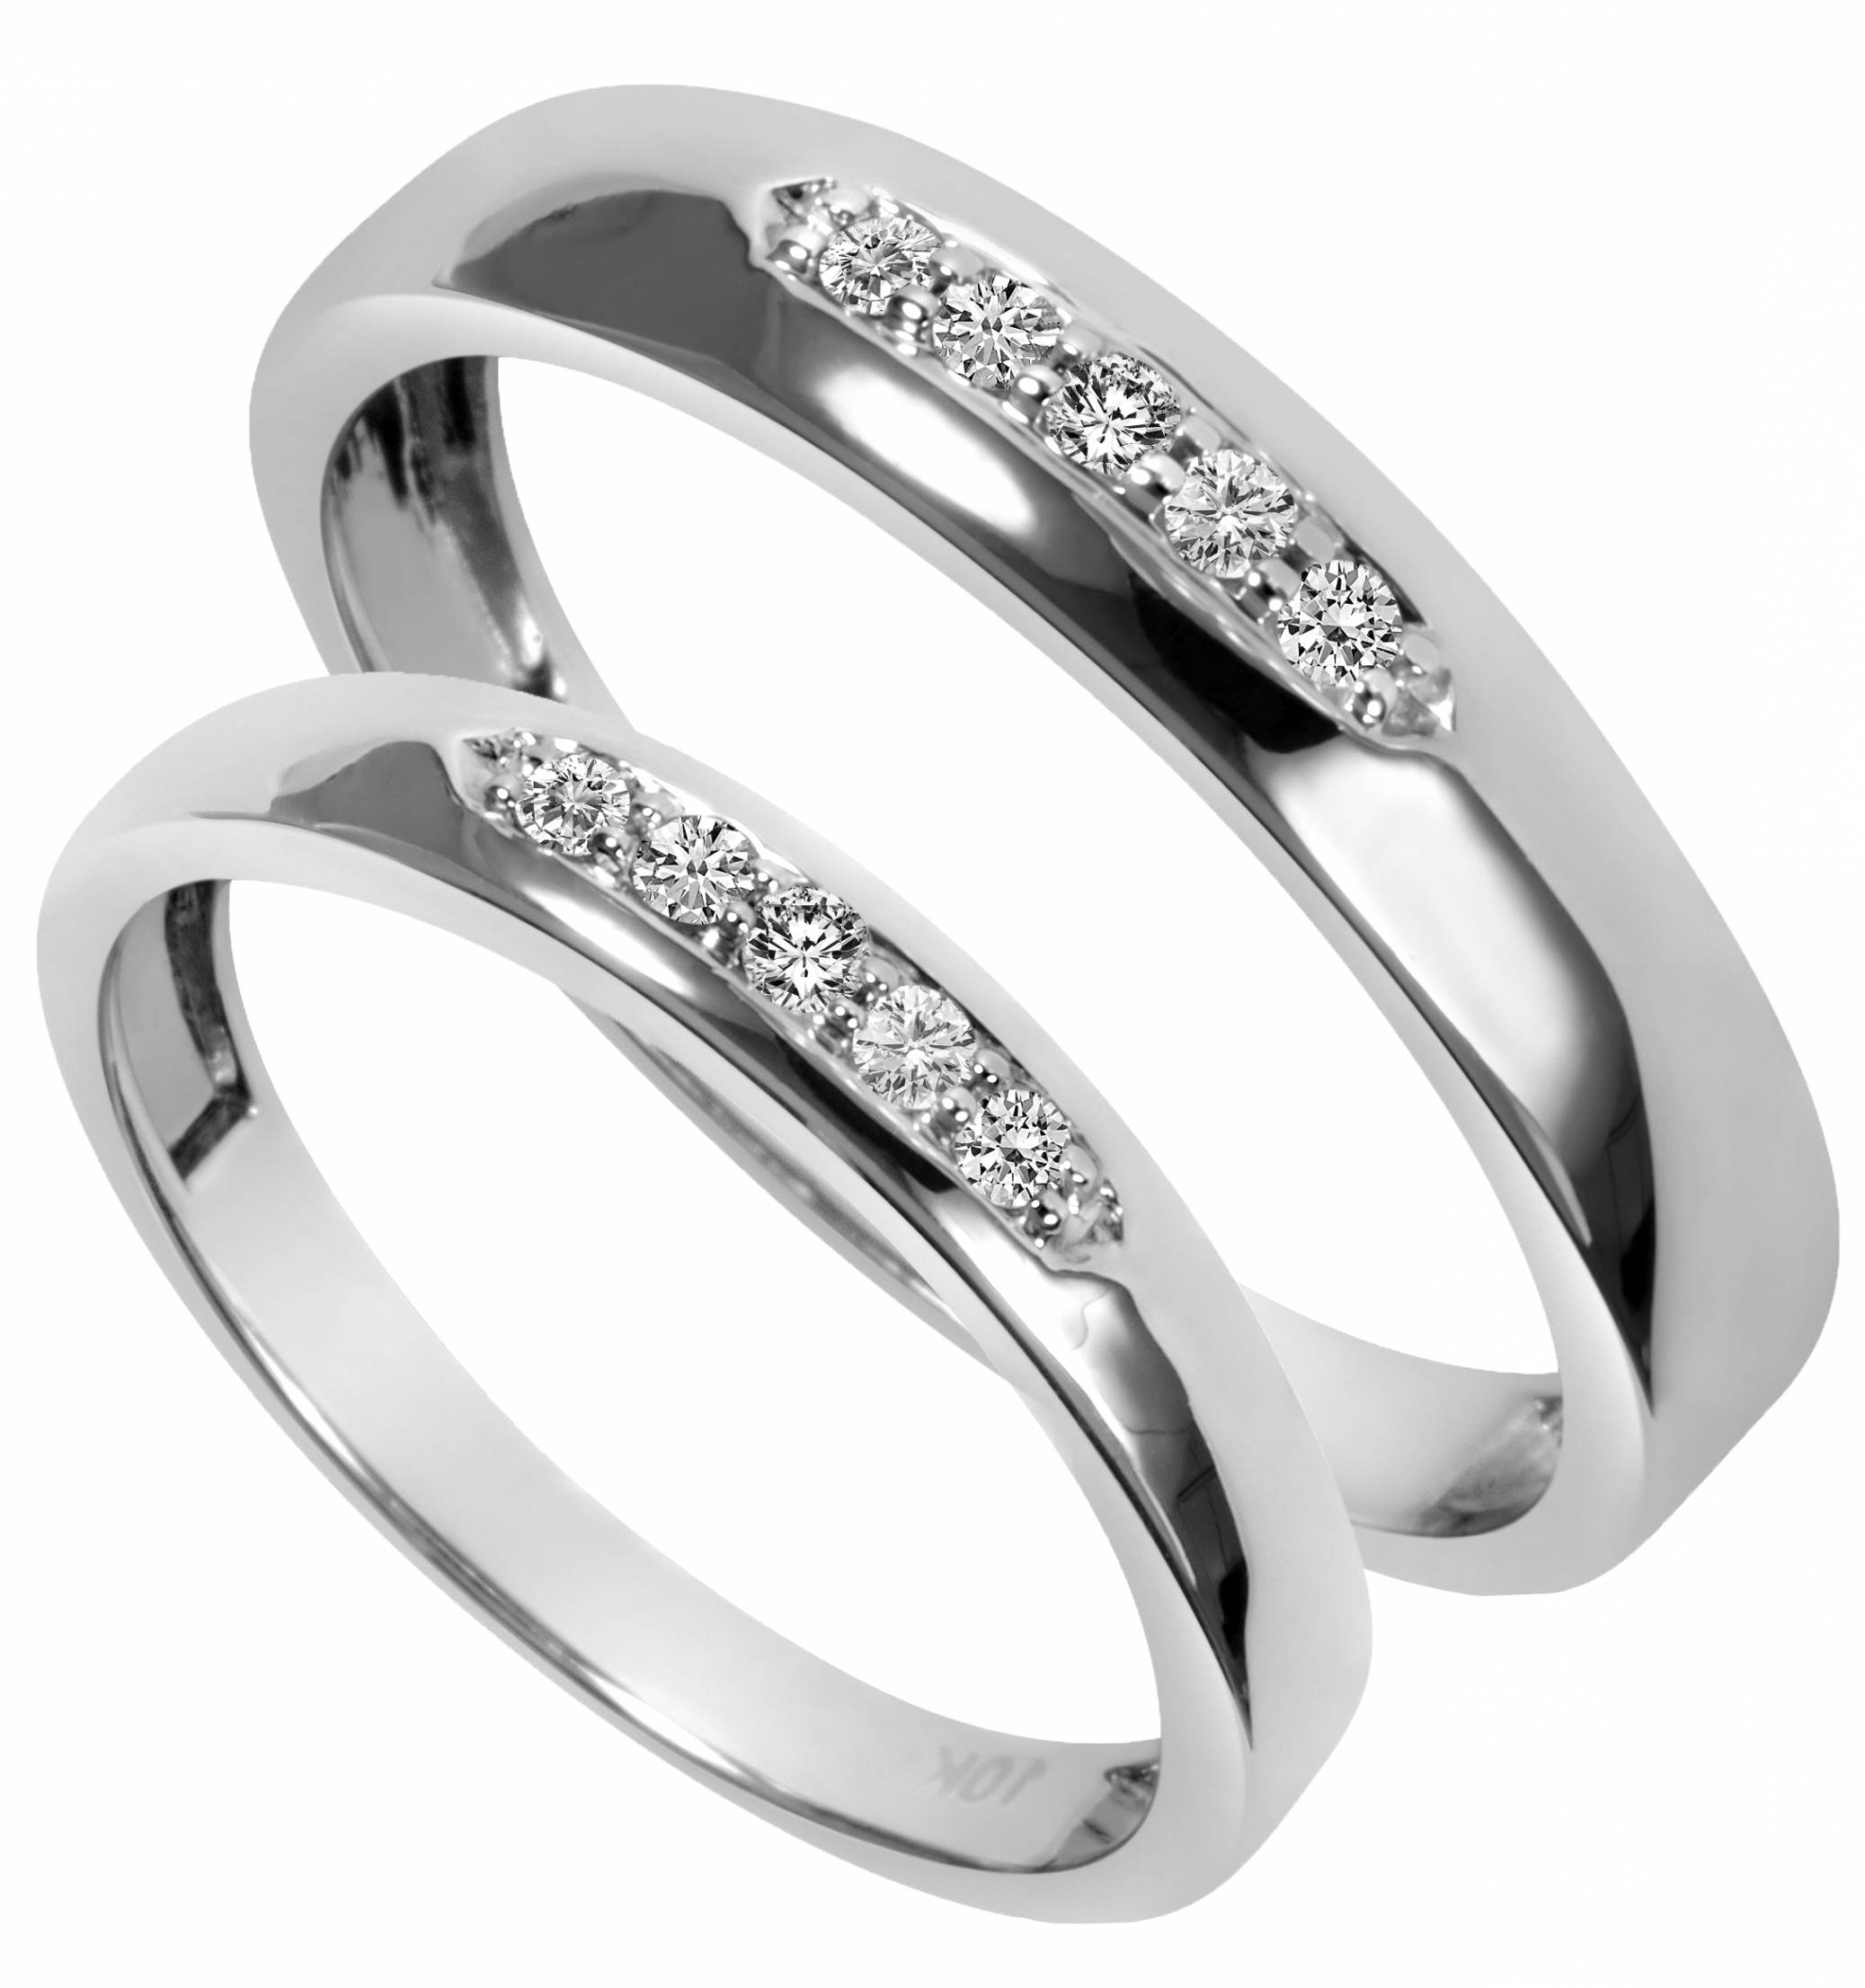 Wedding Rings : Remarkable Wedding Rings Sets His And Hers Picture In Matching Engagement Rings For Him And Her (View 10 of 15)